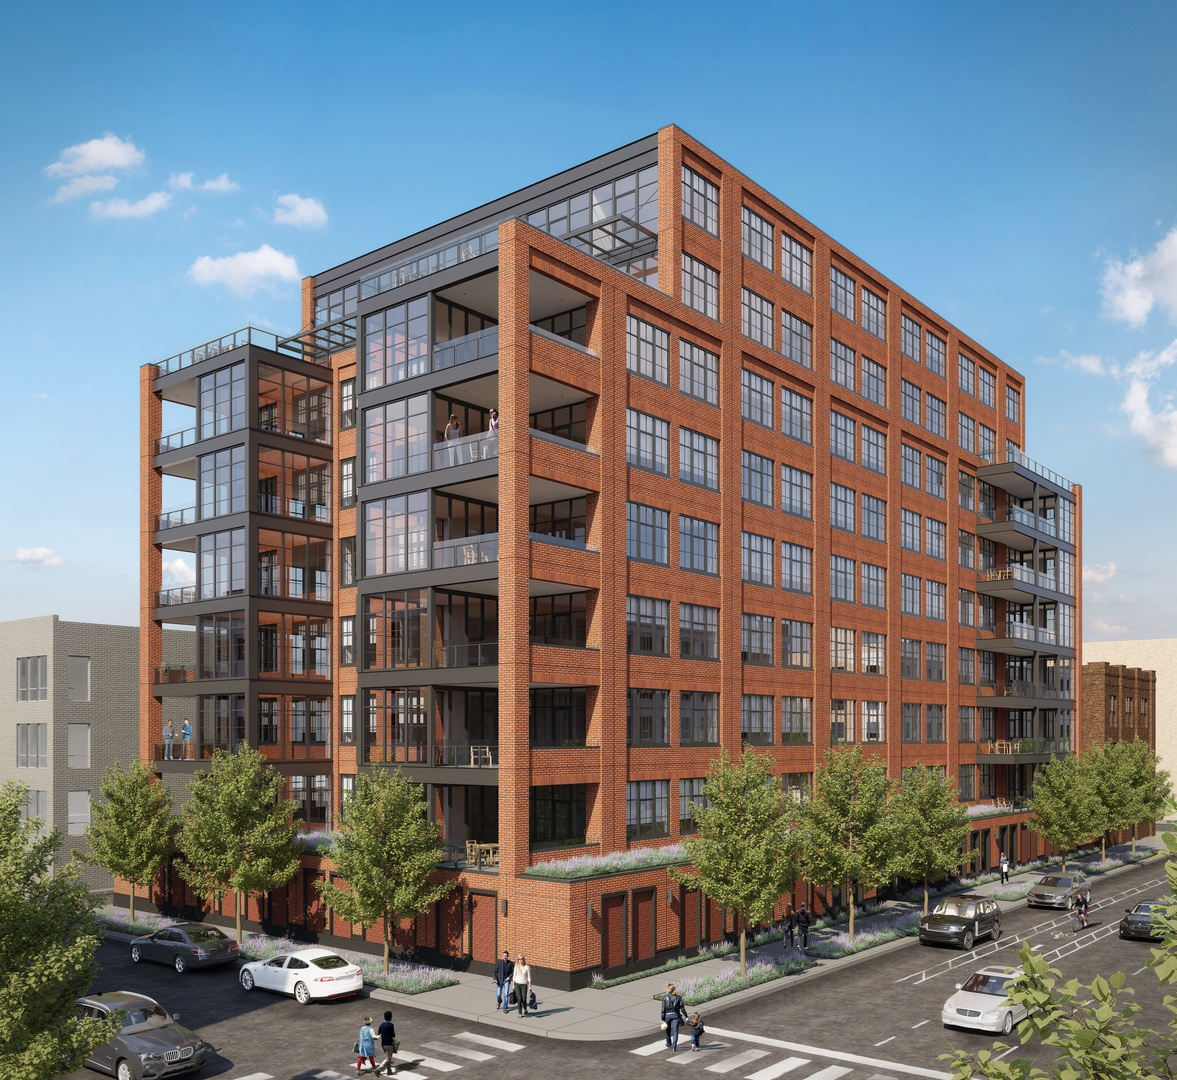 Кондоминиум для того Продажа на 1109 West Washington Boulevard #6A 1109 West Washington Boulevard #6A Chicago, Иллинойс,60607 Соединенные Штаты